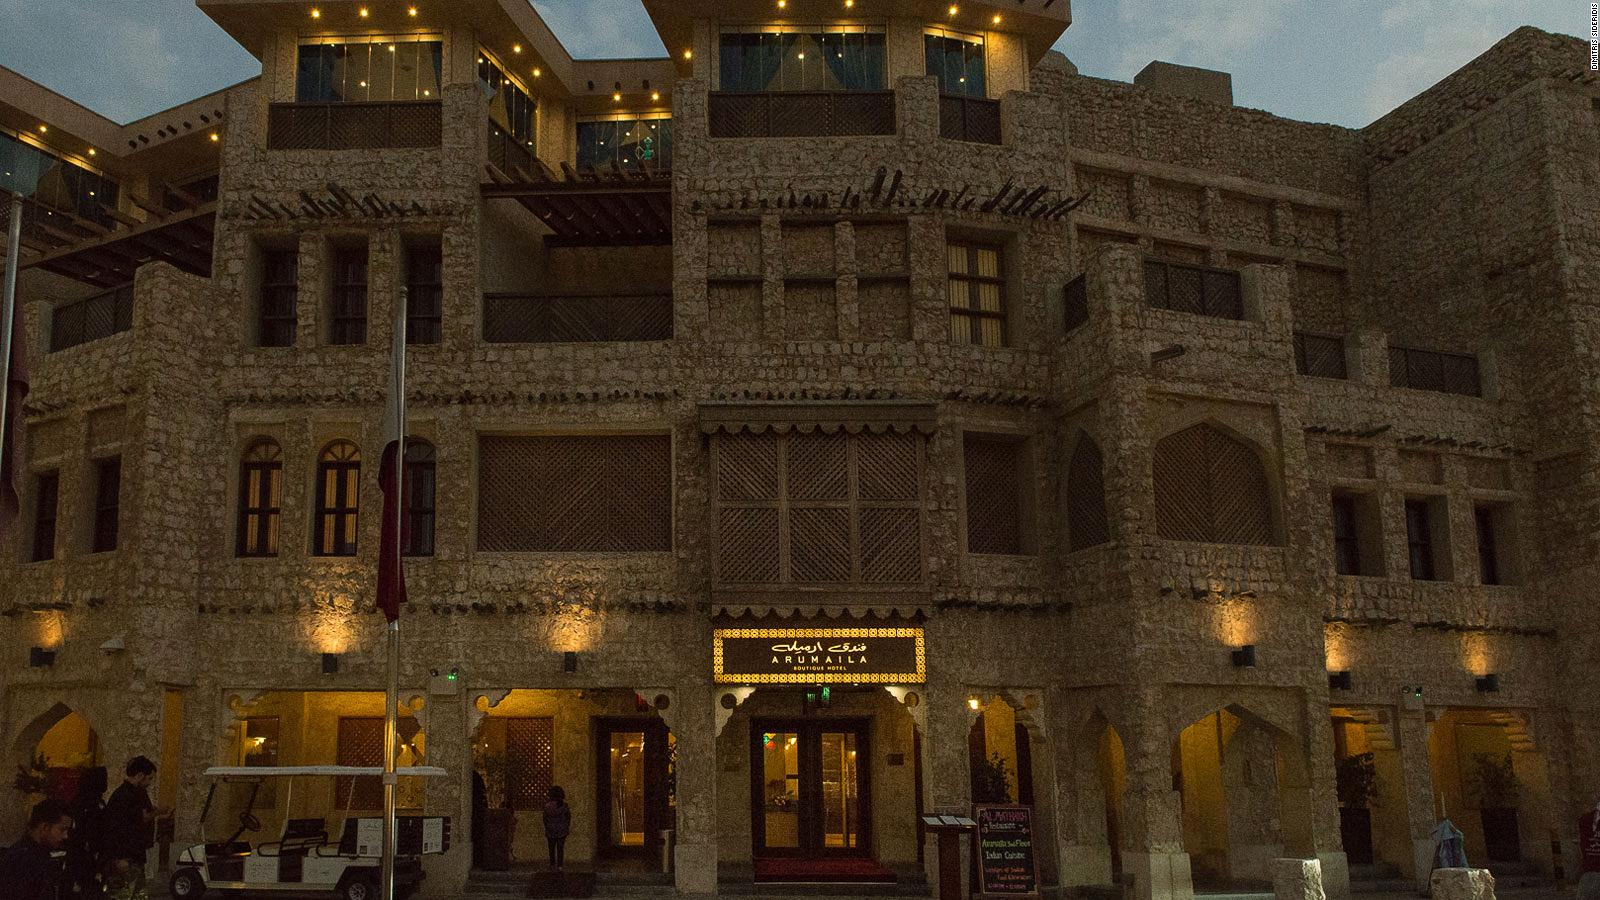 Souq Waqif: 10 things to do at old market in Doha, Qatar   CNN Travel